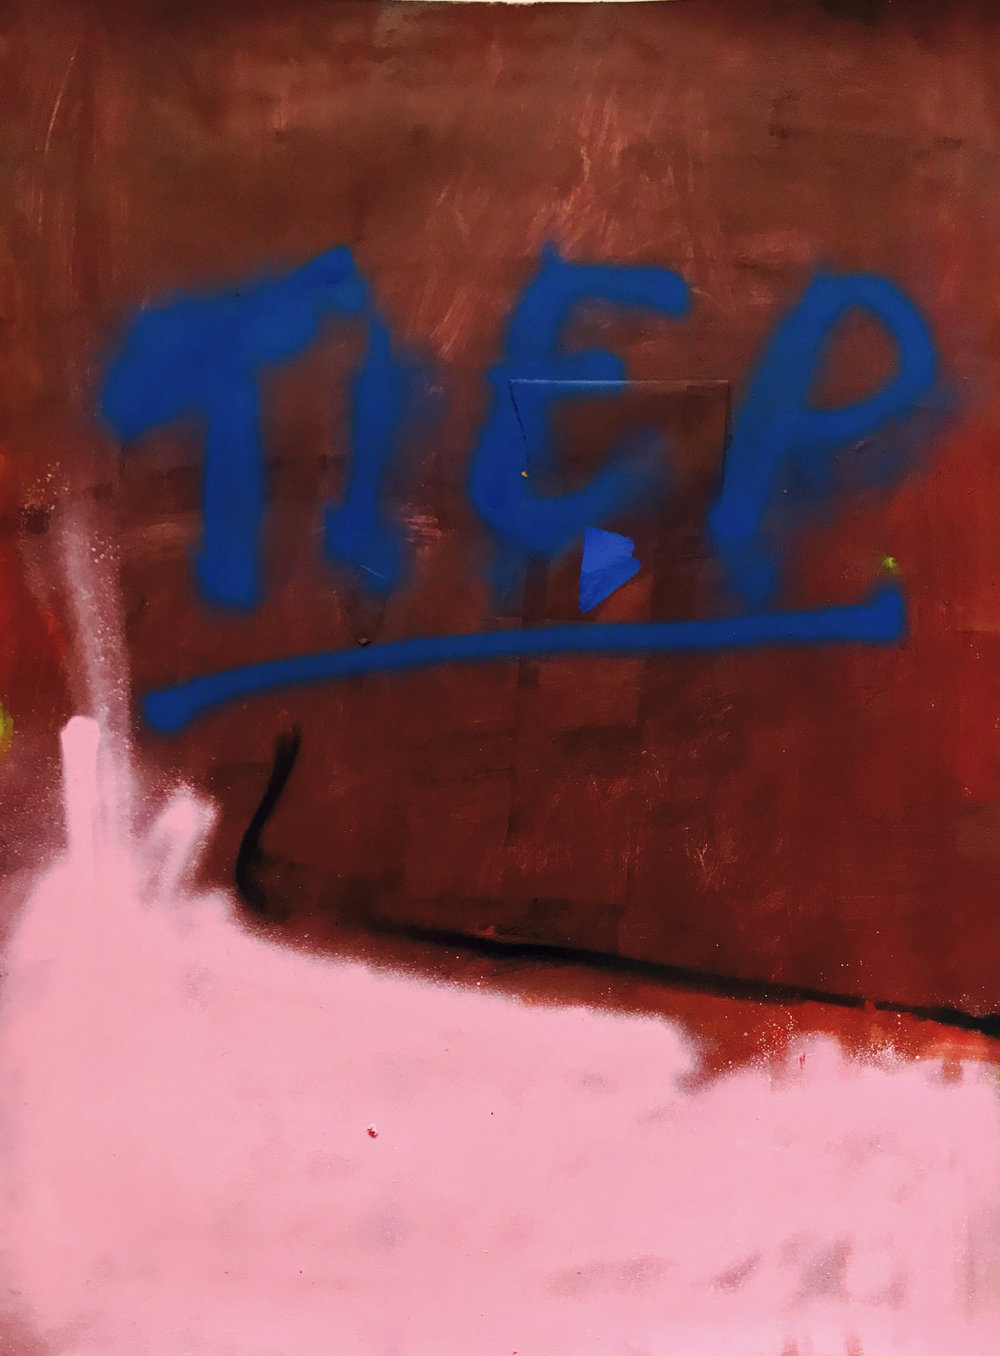 Tiep (Sleep), oil paint, oil stick and spray paint on paper, 29 x 21.5 in, 2017   Price on request